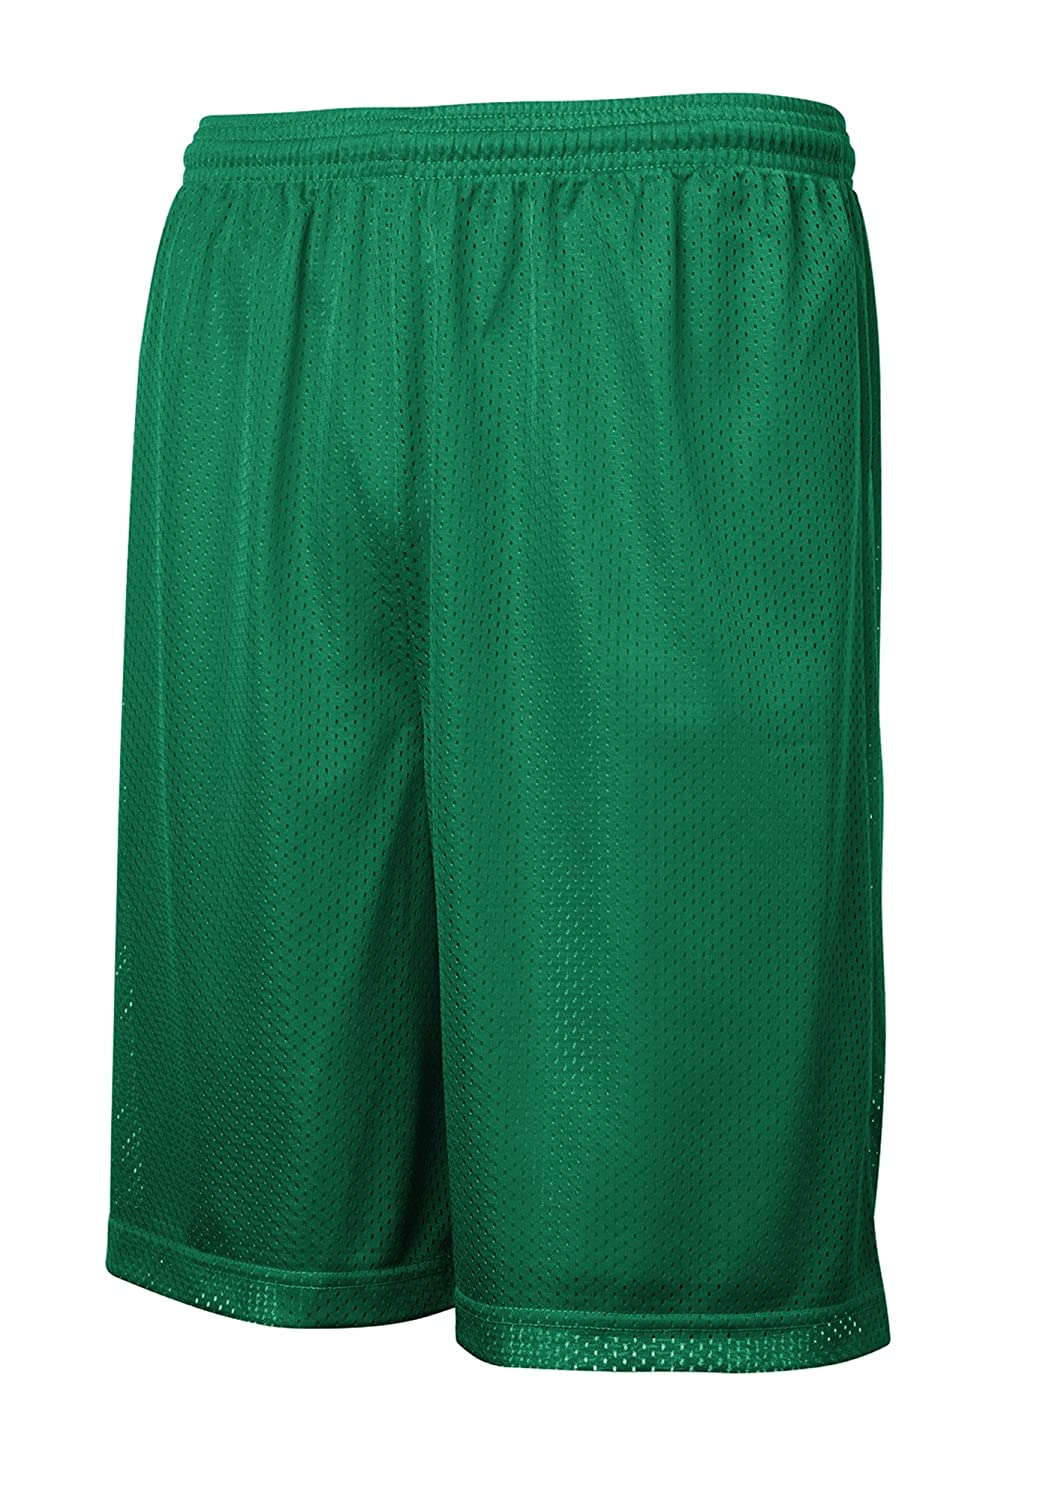 Joe's USA Mens Or Youth All Sport Shorts Moisture Wicking Shorts. Youth XS - Adult 4XL USALWO15721